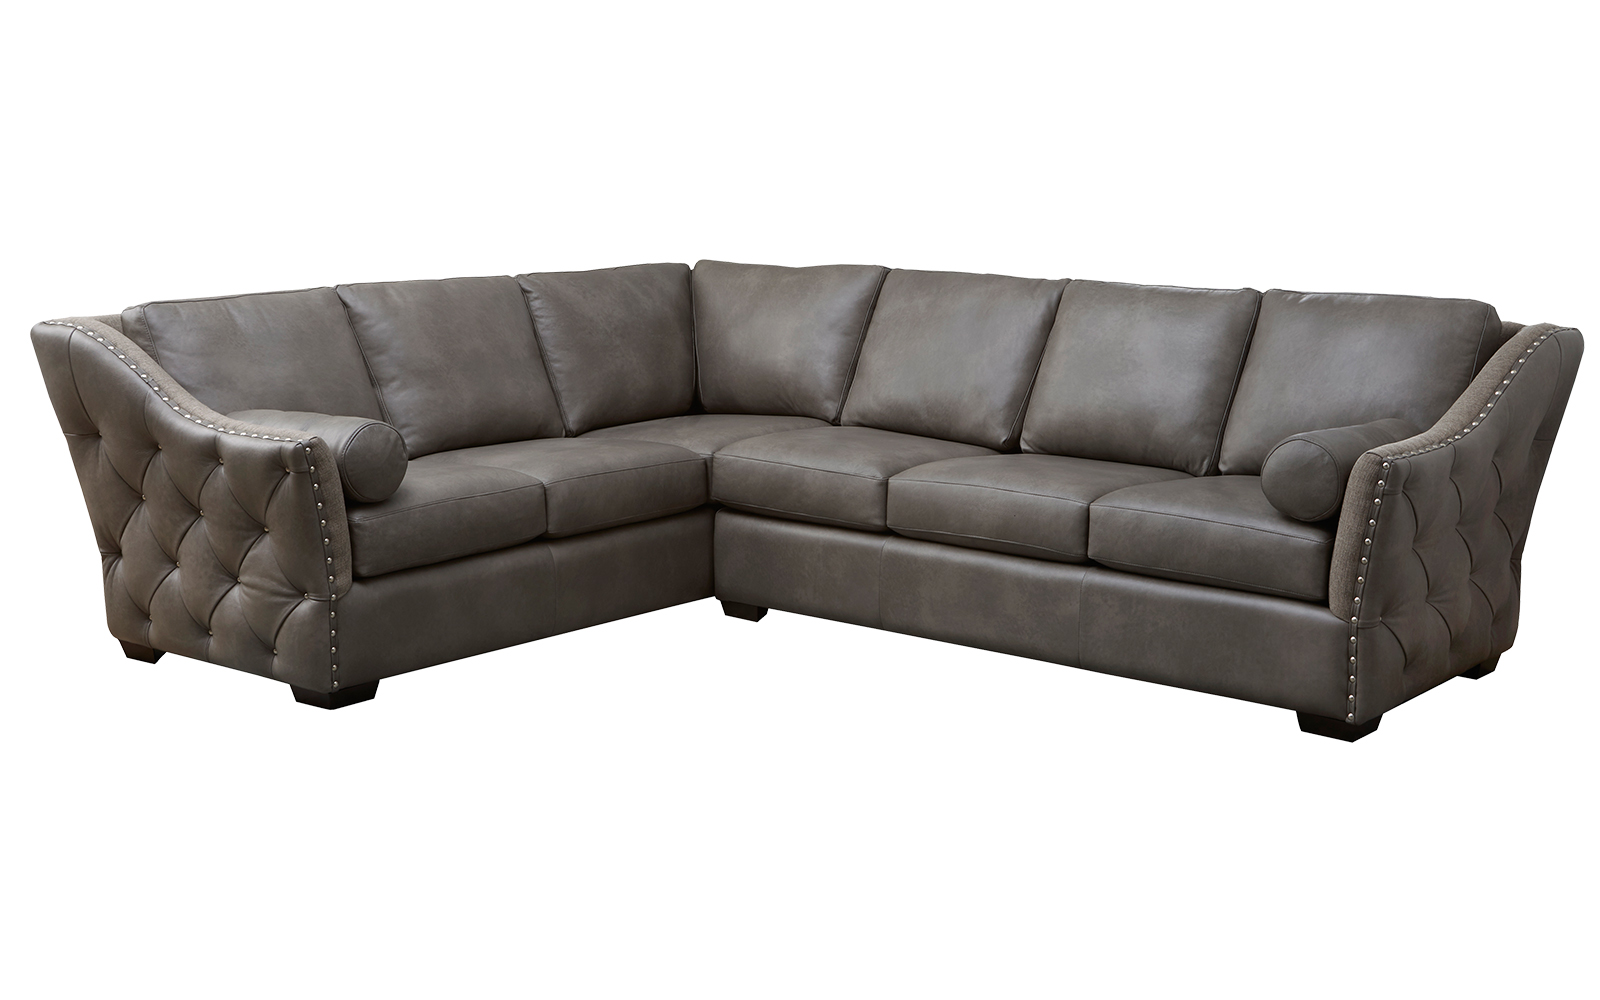 Sofa Brisbane Brisbane Sofa Available Arizona Leather Interiors